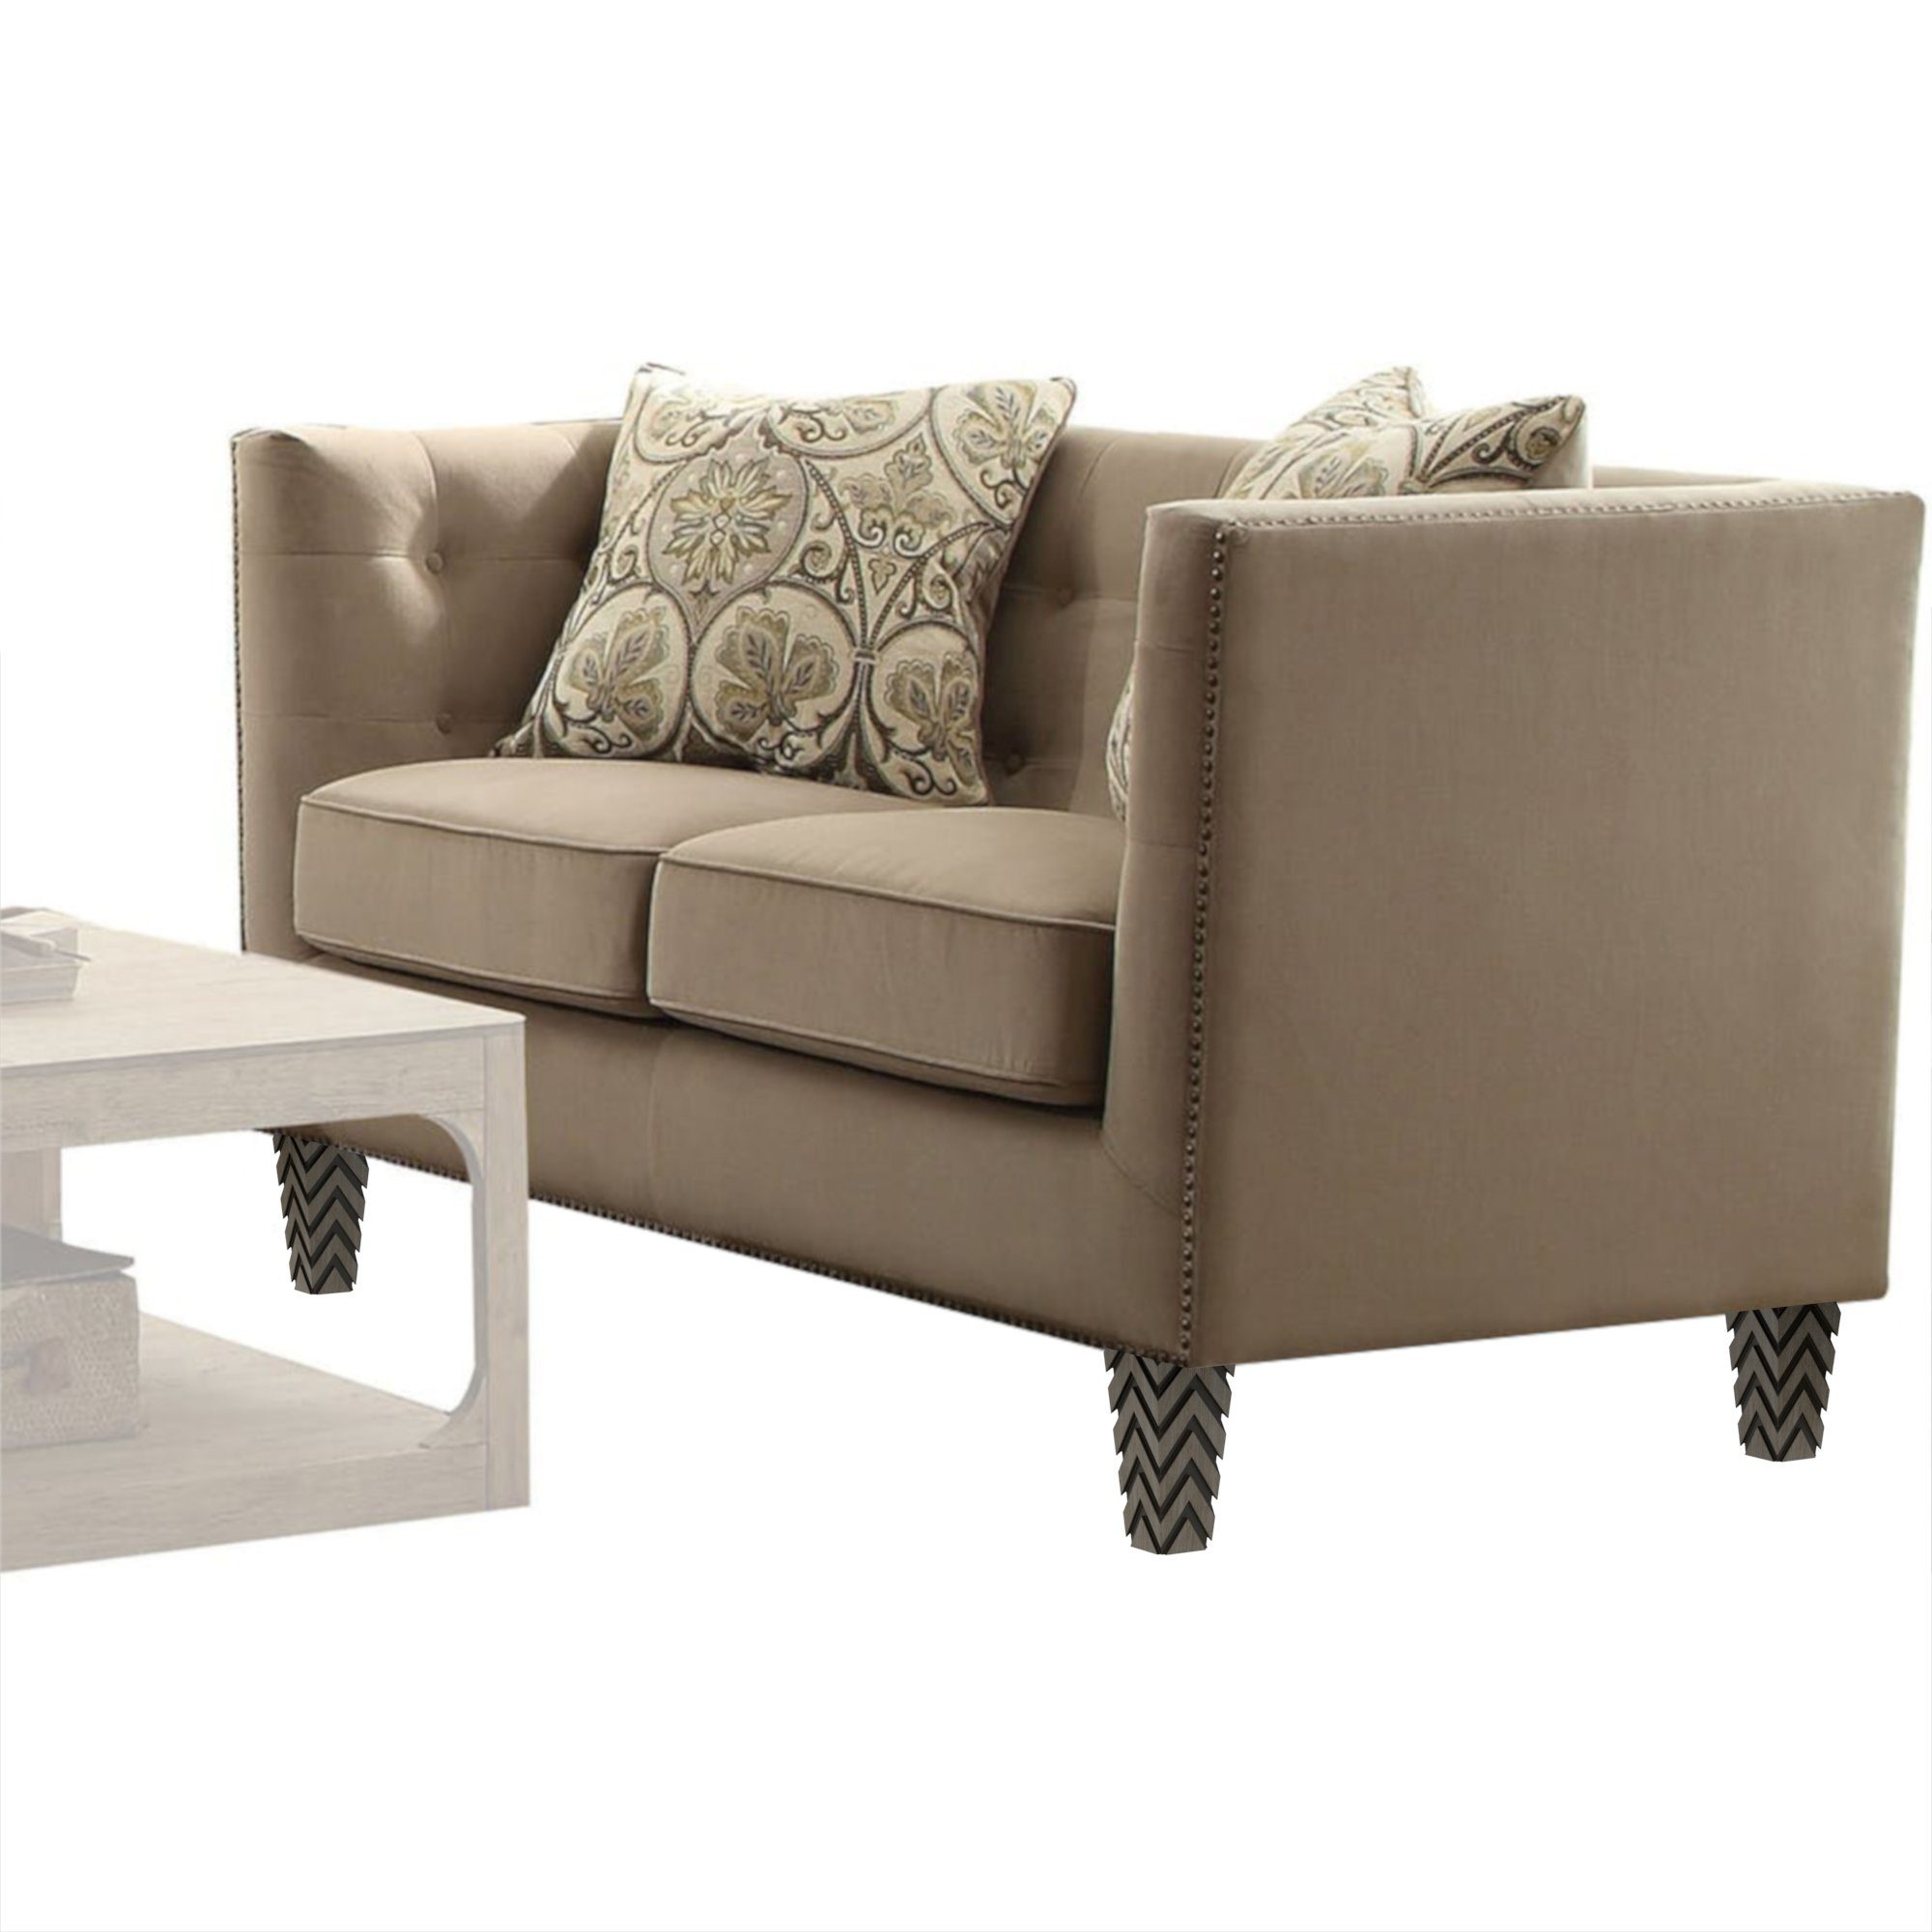 "Tufted Beige Juppa Loveseat with Nailheads (63"")"